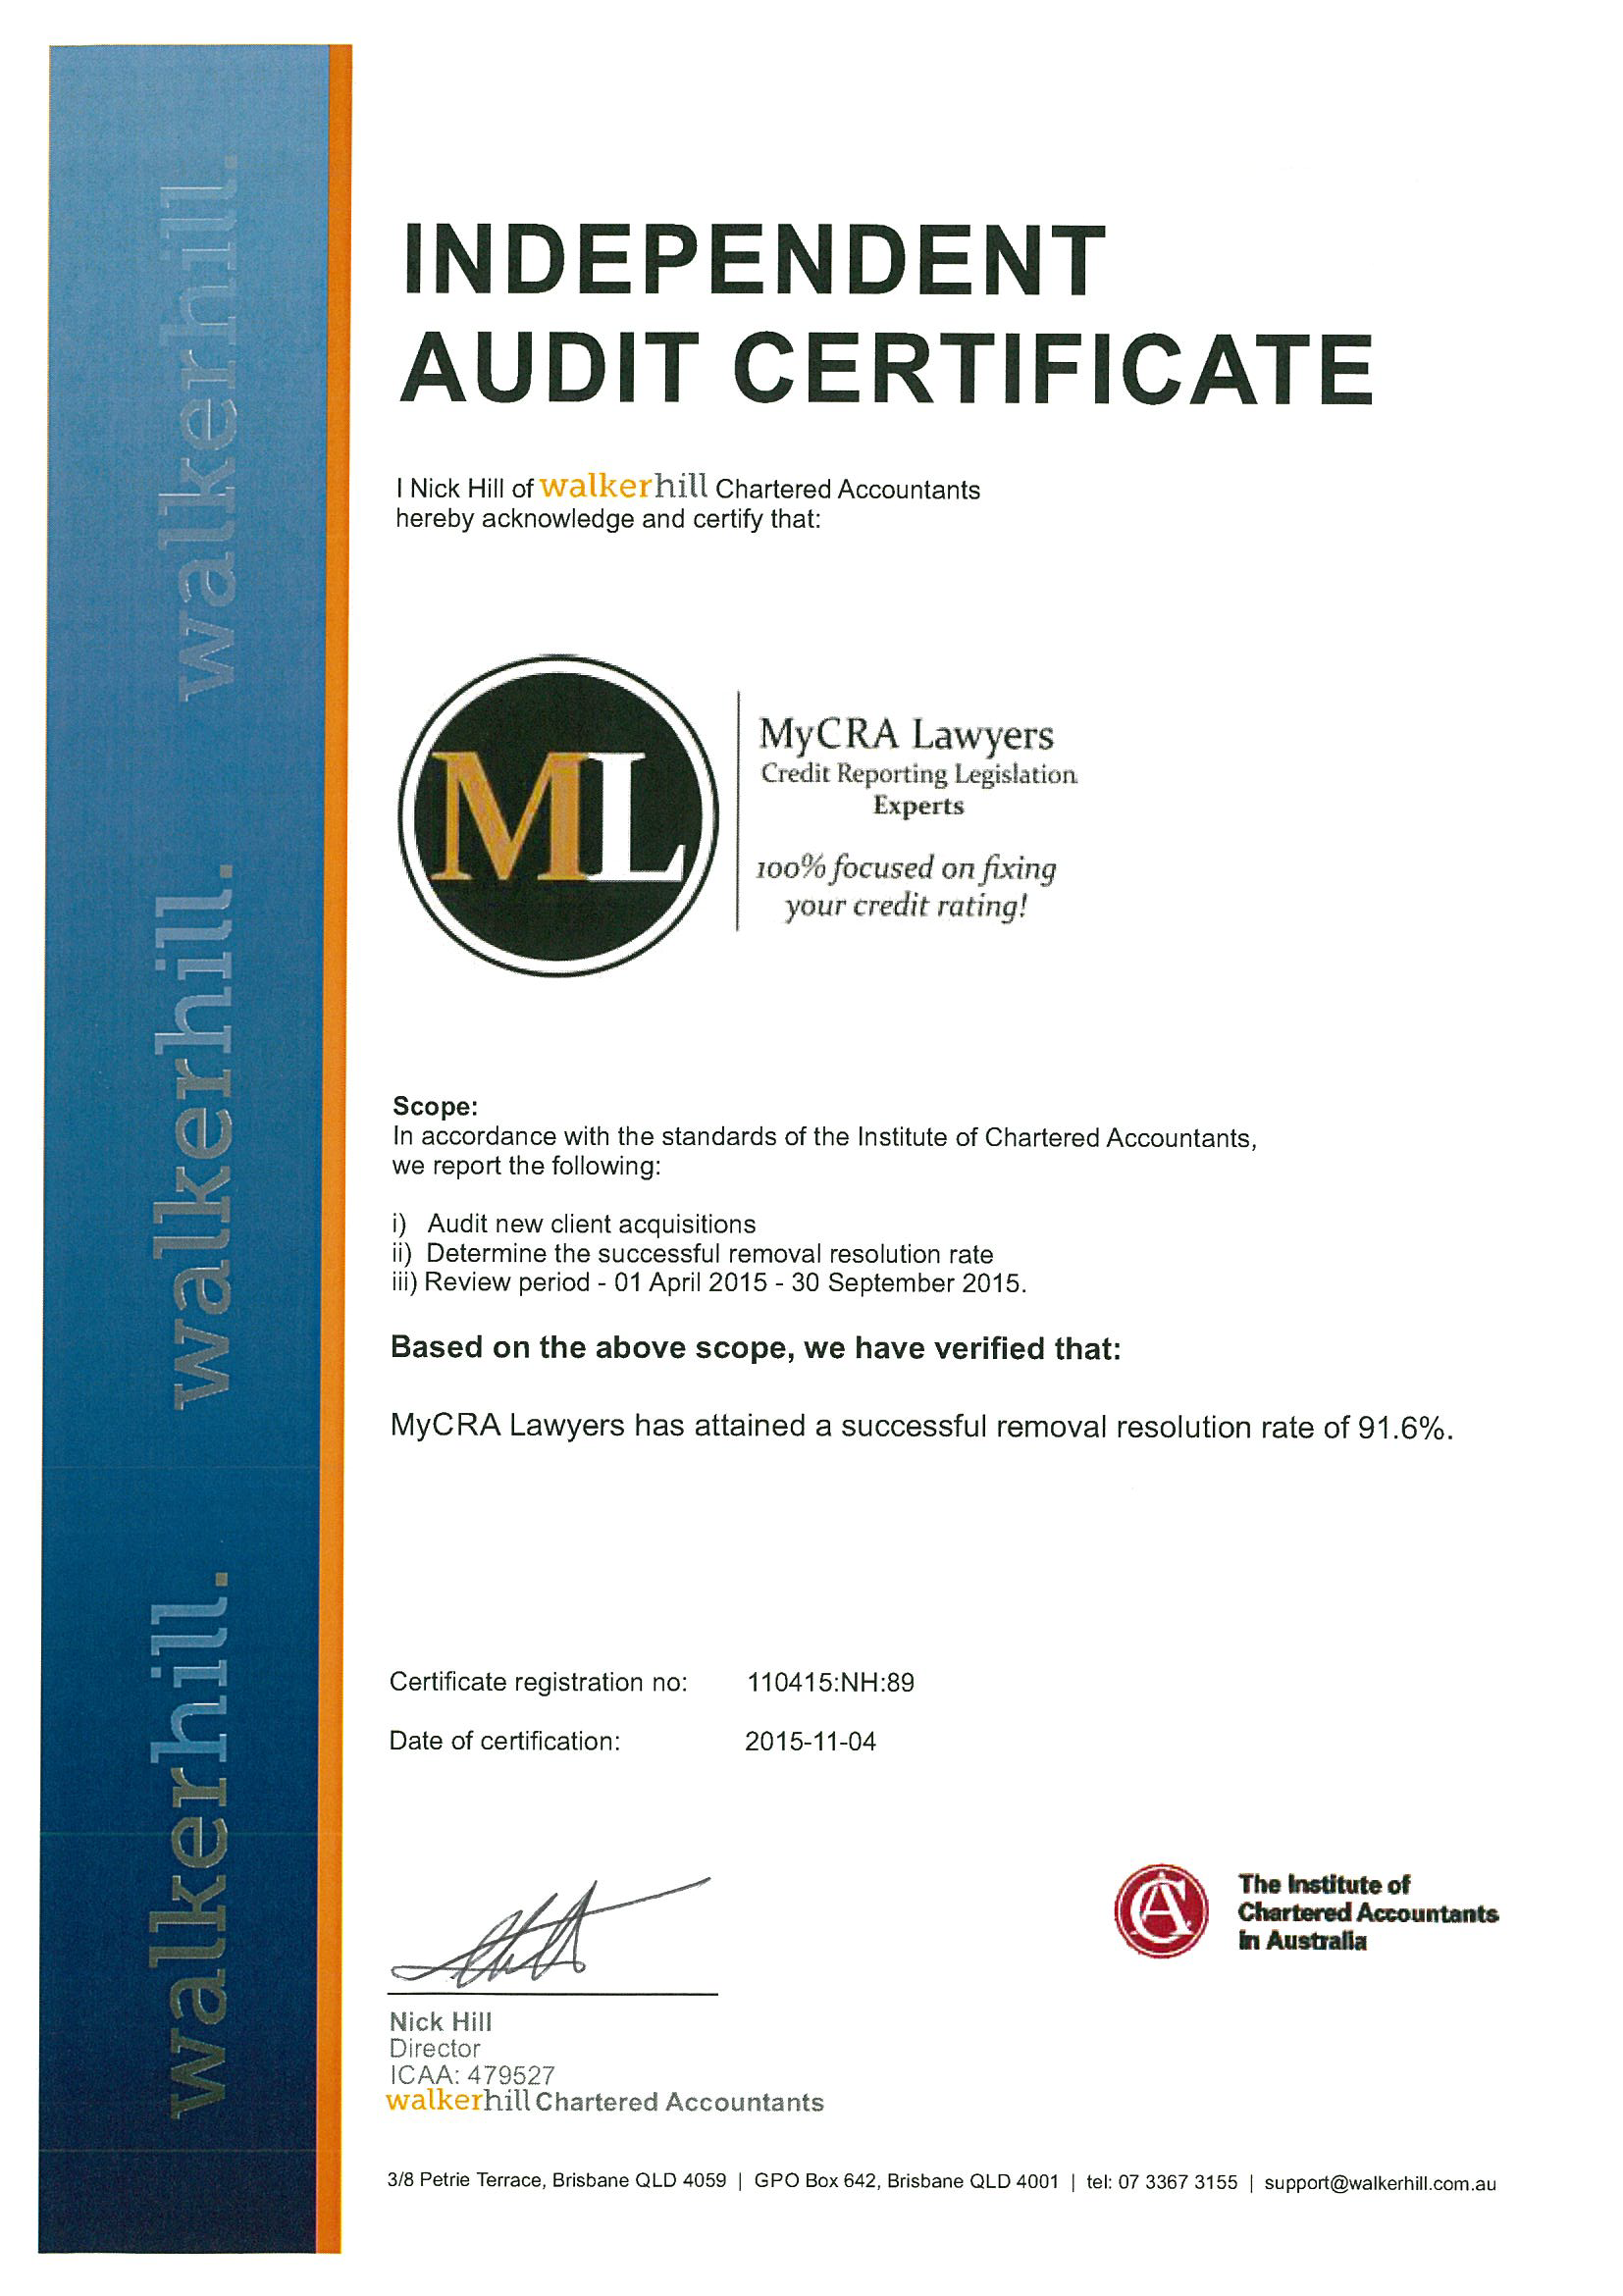 MyCRA Lawyers Independent Audit Certificate